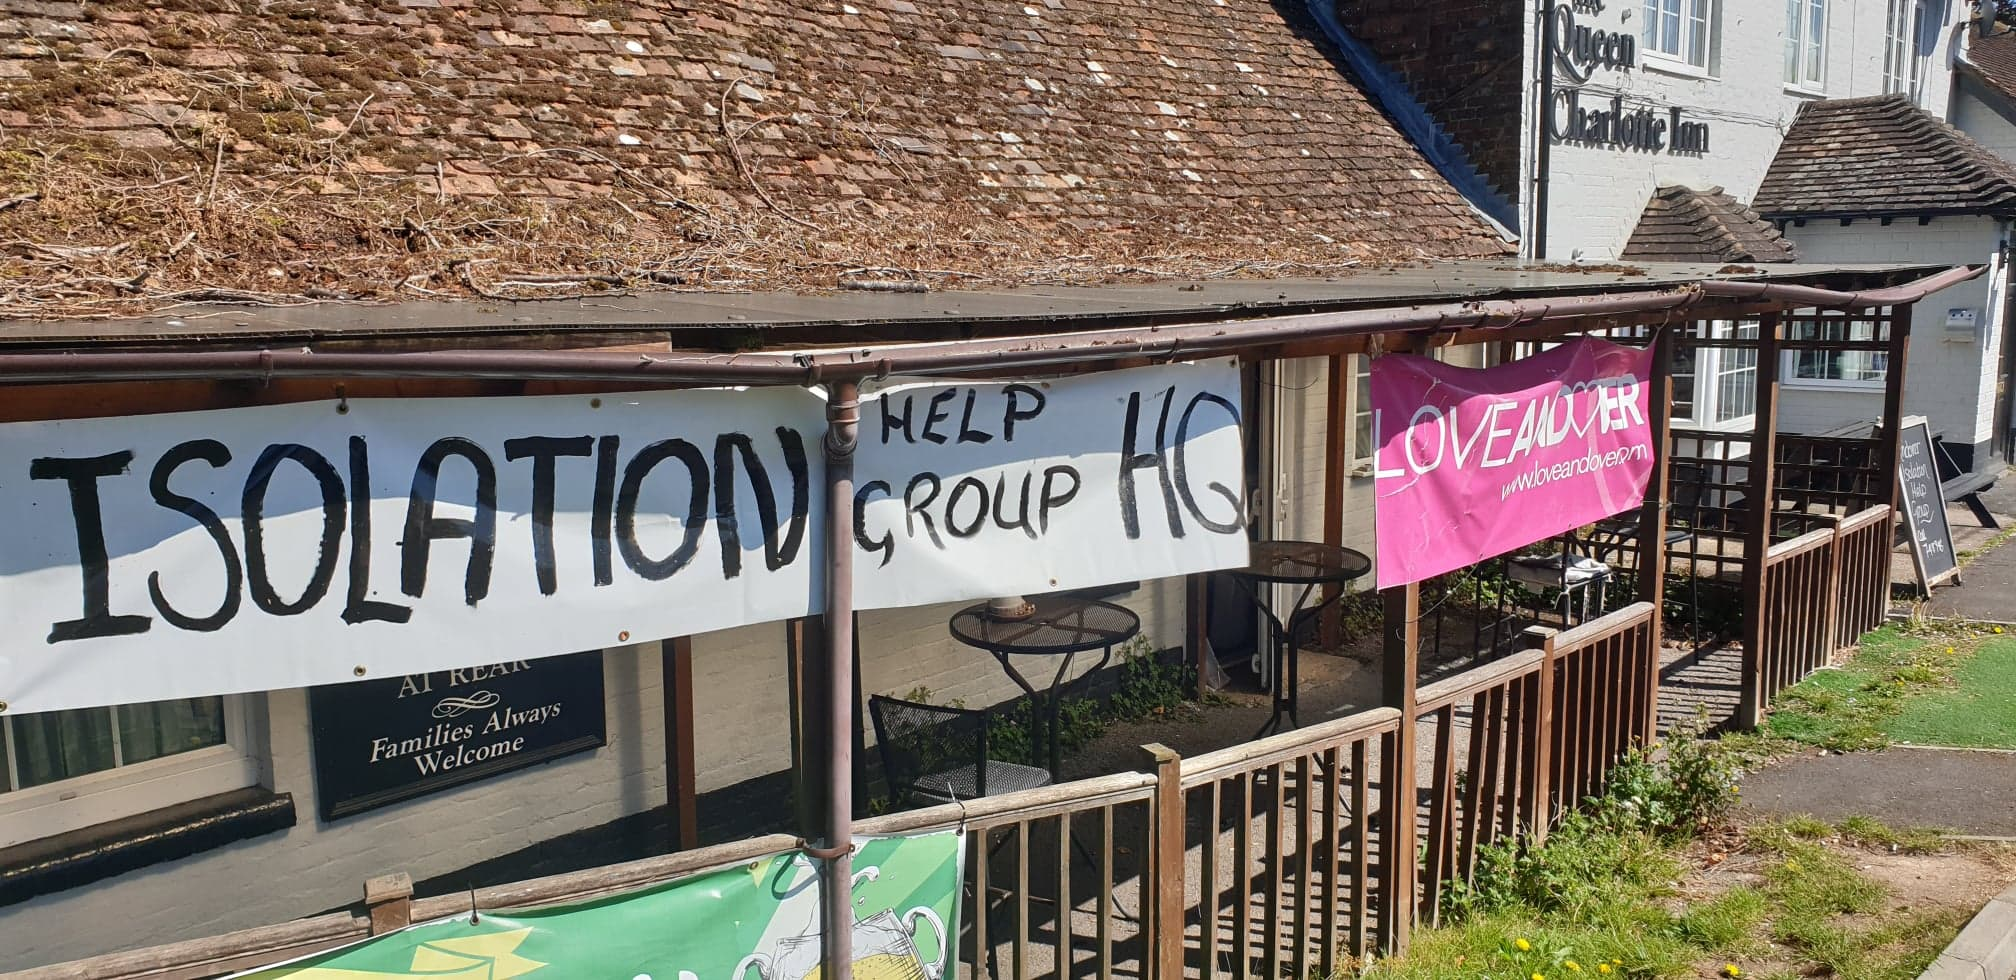 LIVE: Andover Isolation Help Group